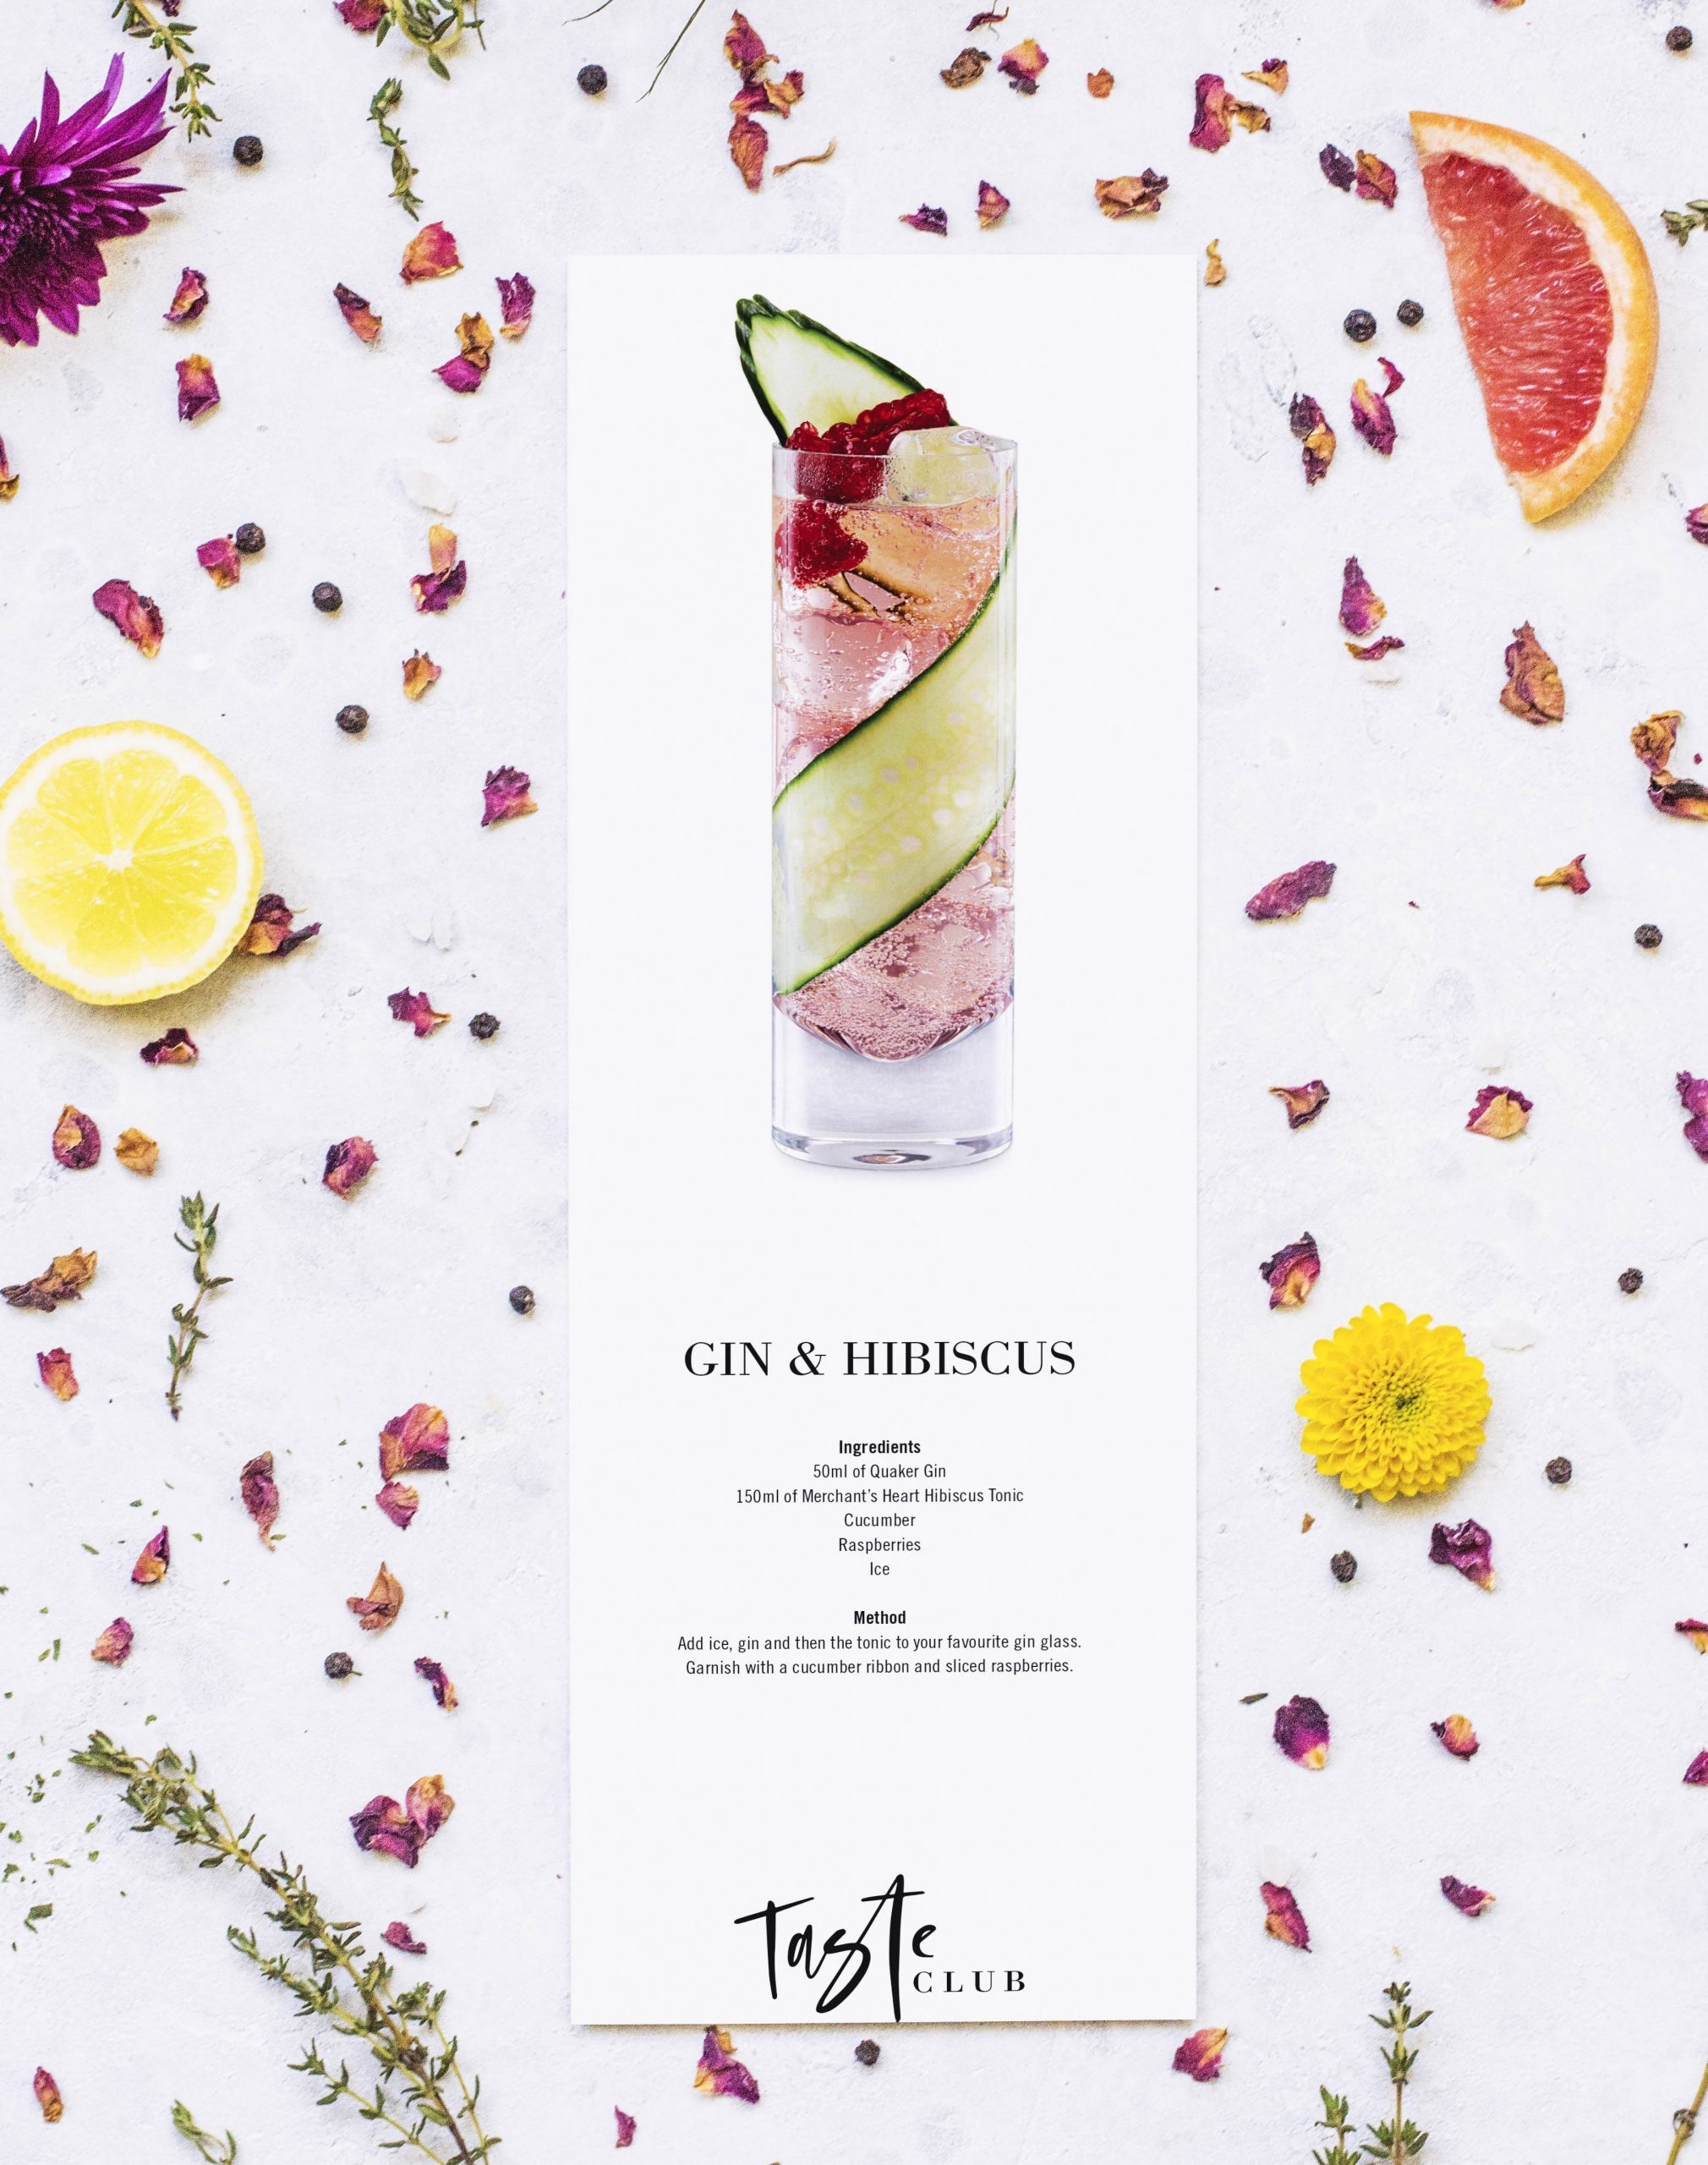 Gin & Hibiscus Cocktail Recipe Card